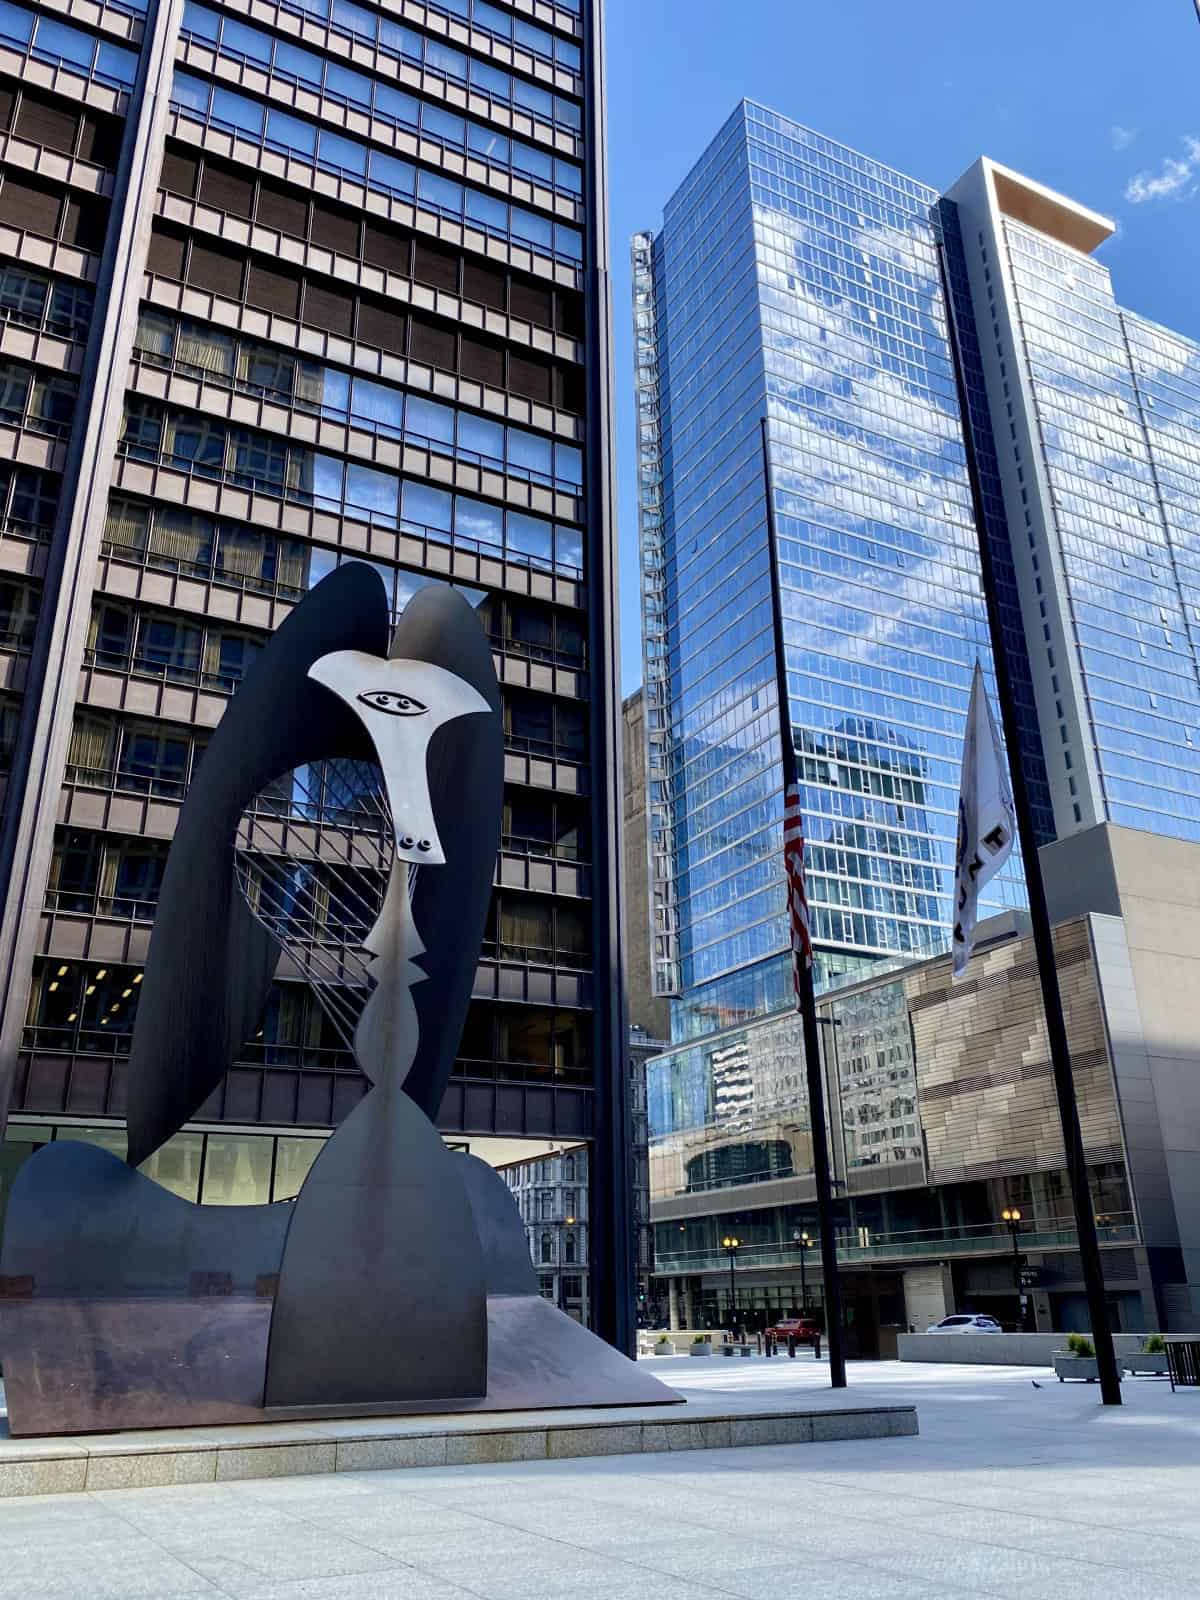 What to do in Chicago - seek out art by famous artists, like this Picasso just sitting in Daley Plaza